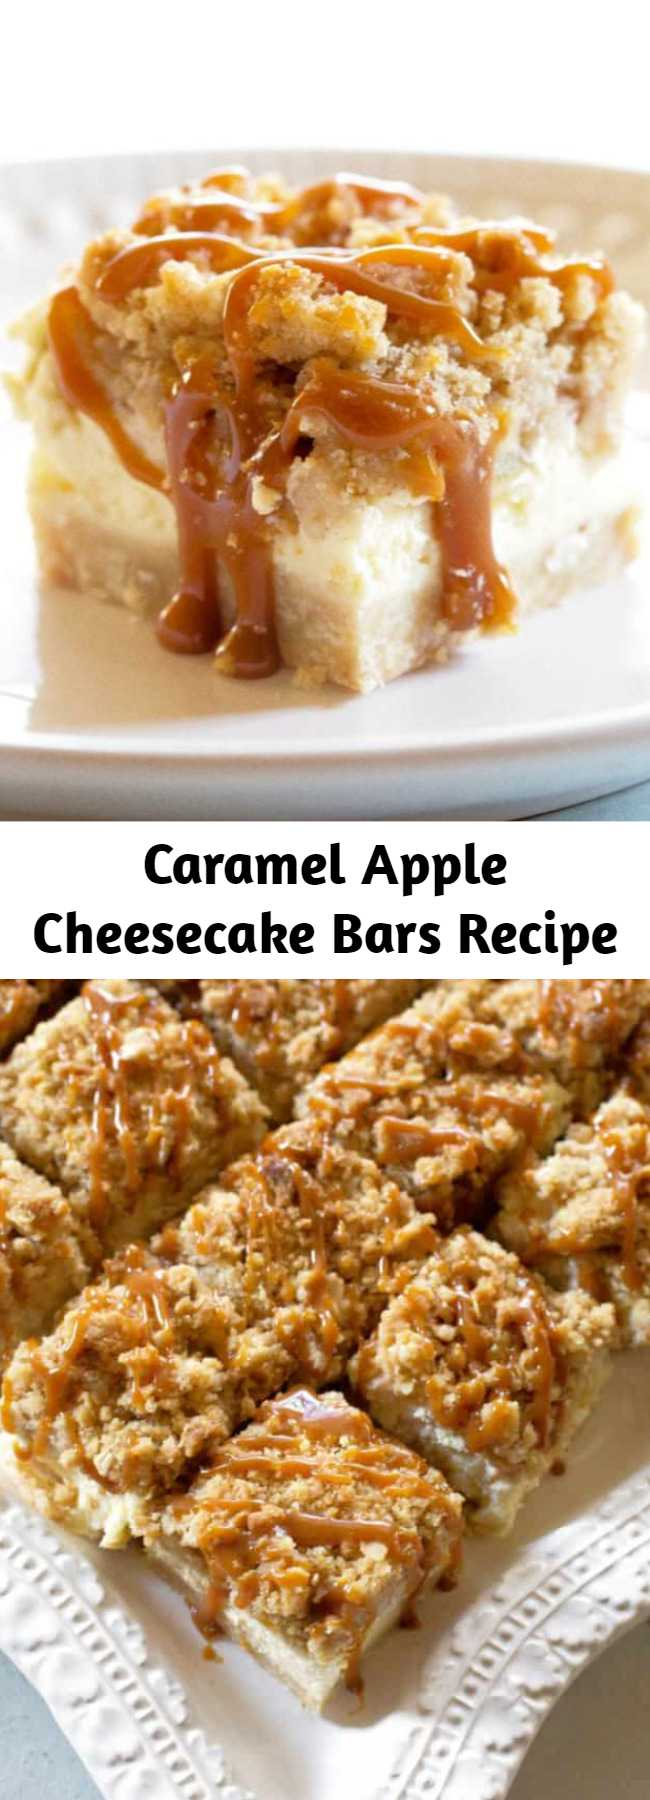 Caramel Apple Cheesecake Bars Recipe - These creamy Caramel Apple Cheesecake Bars start with a shortbread crust, a thick cheesecake layer, and are topped with diced cinnamon apples and a sweet streusel topping. These are a tried and true cheesecake bar dessert recipe.